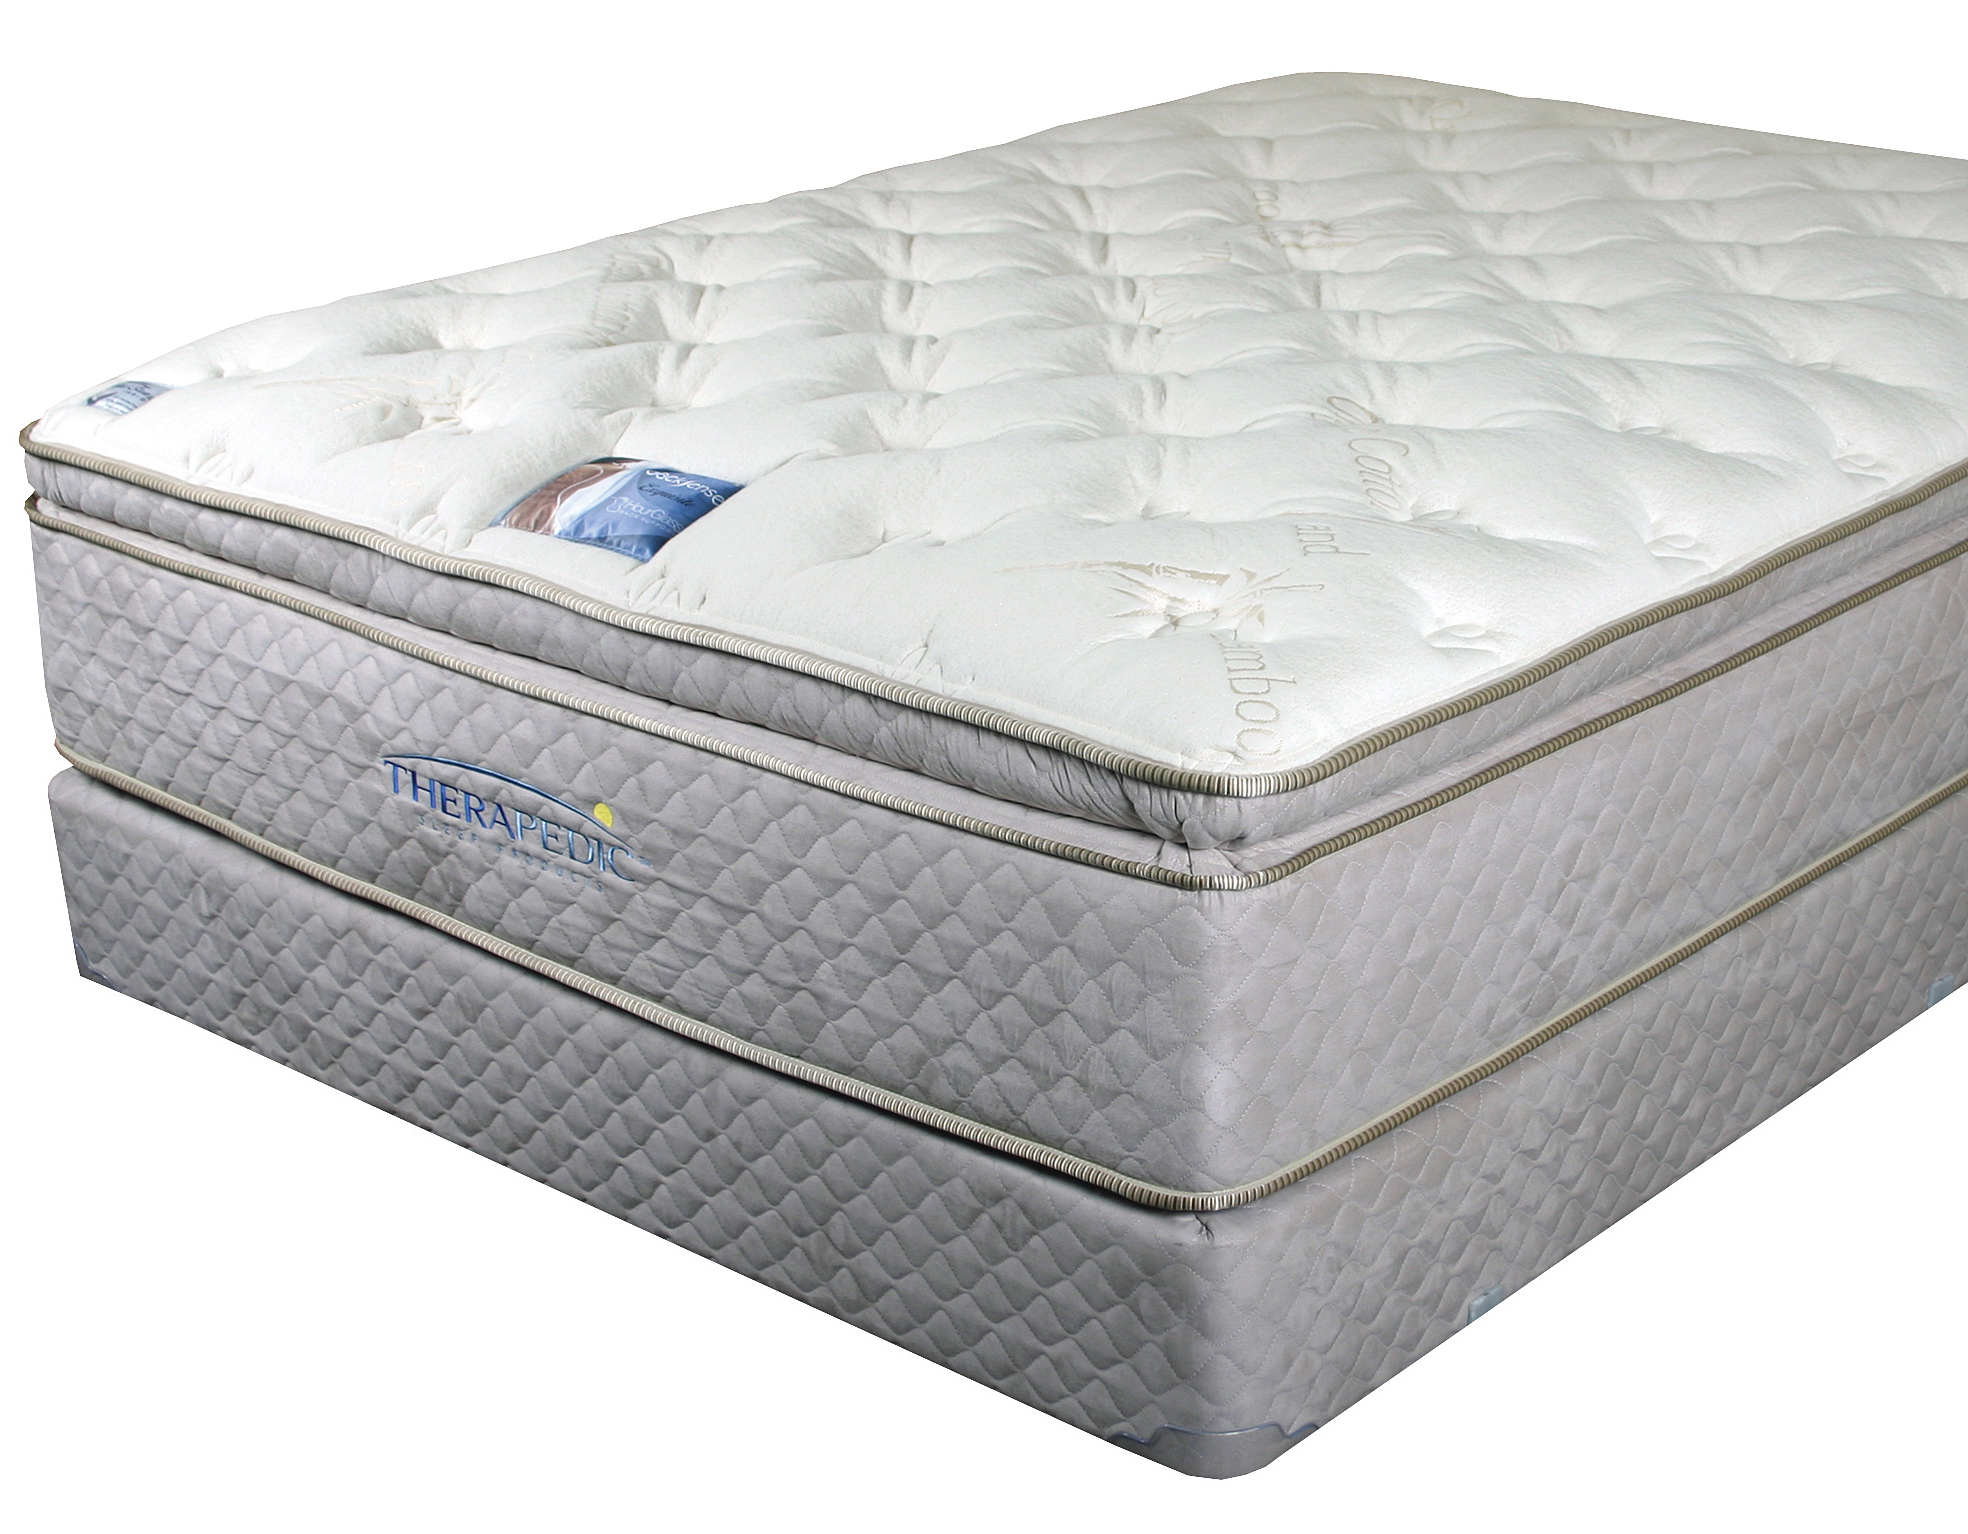 Home Products Pillow Top Mattress Topper